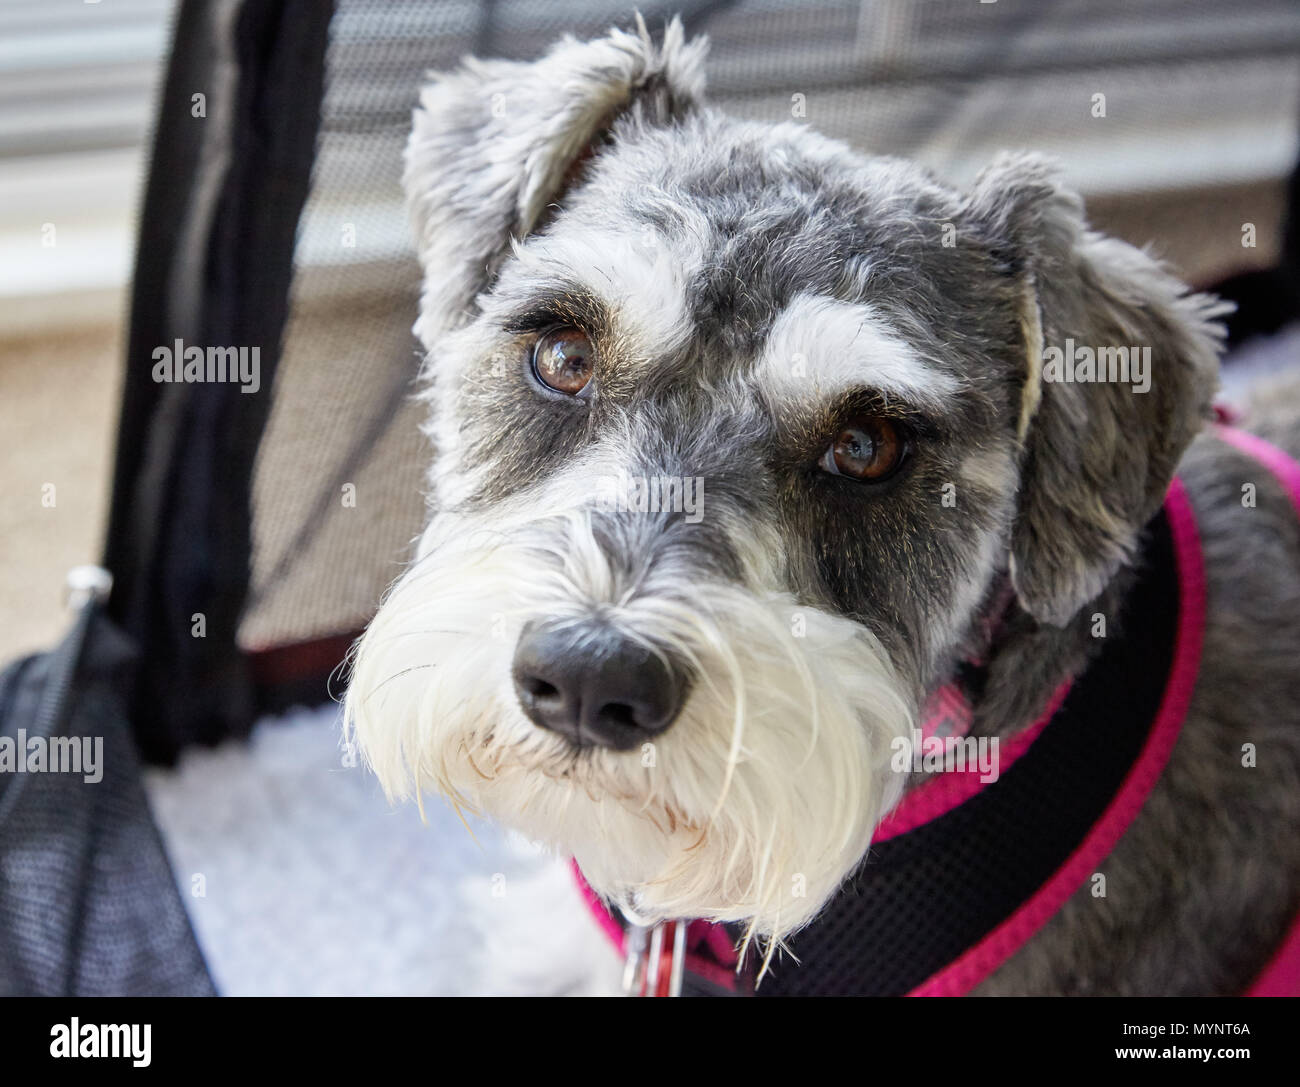 Miniature Schnauzer  resting on bed - Stock Image